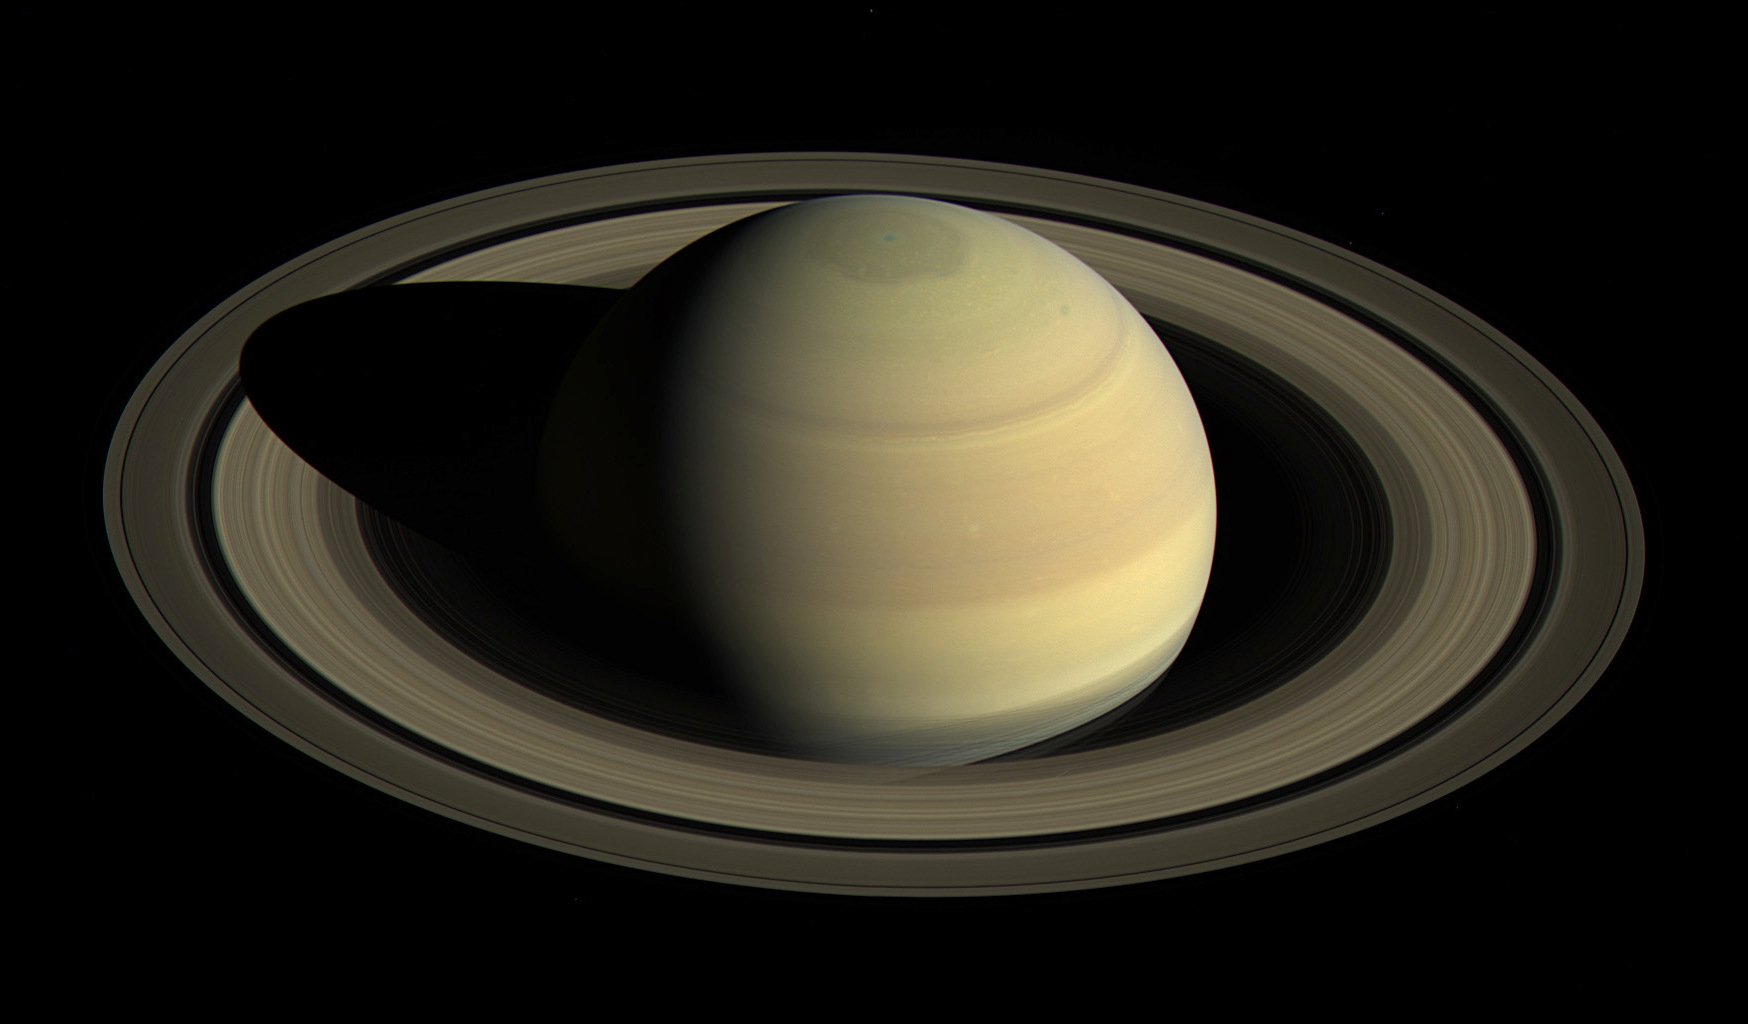 saturn planet science - photo #13